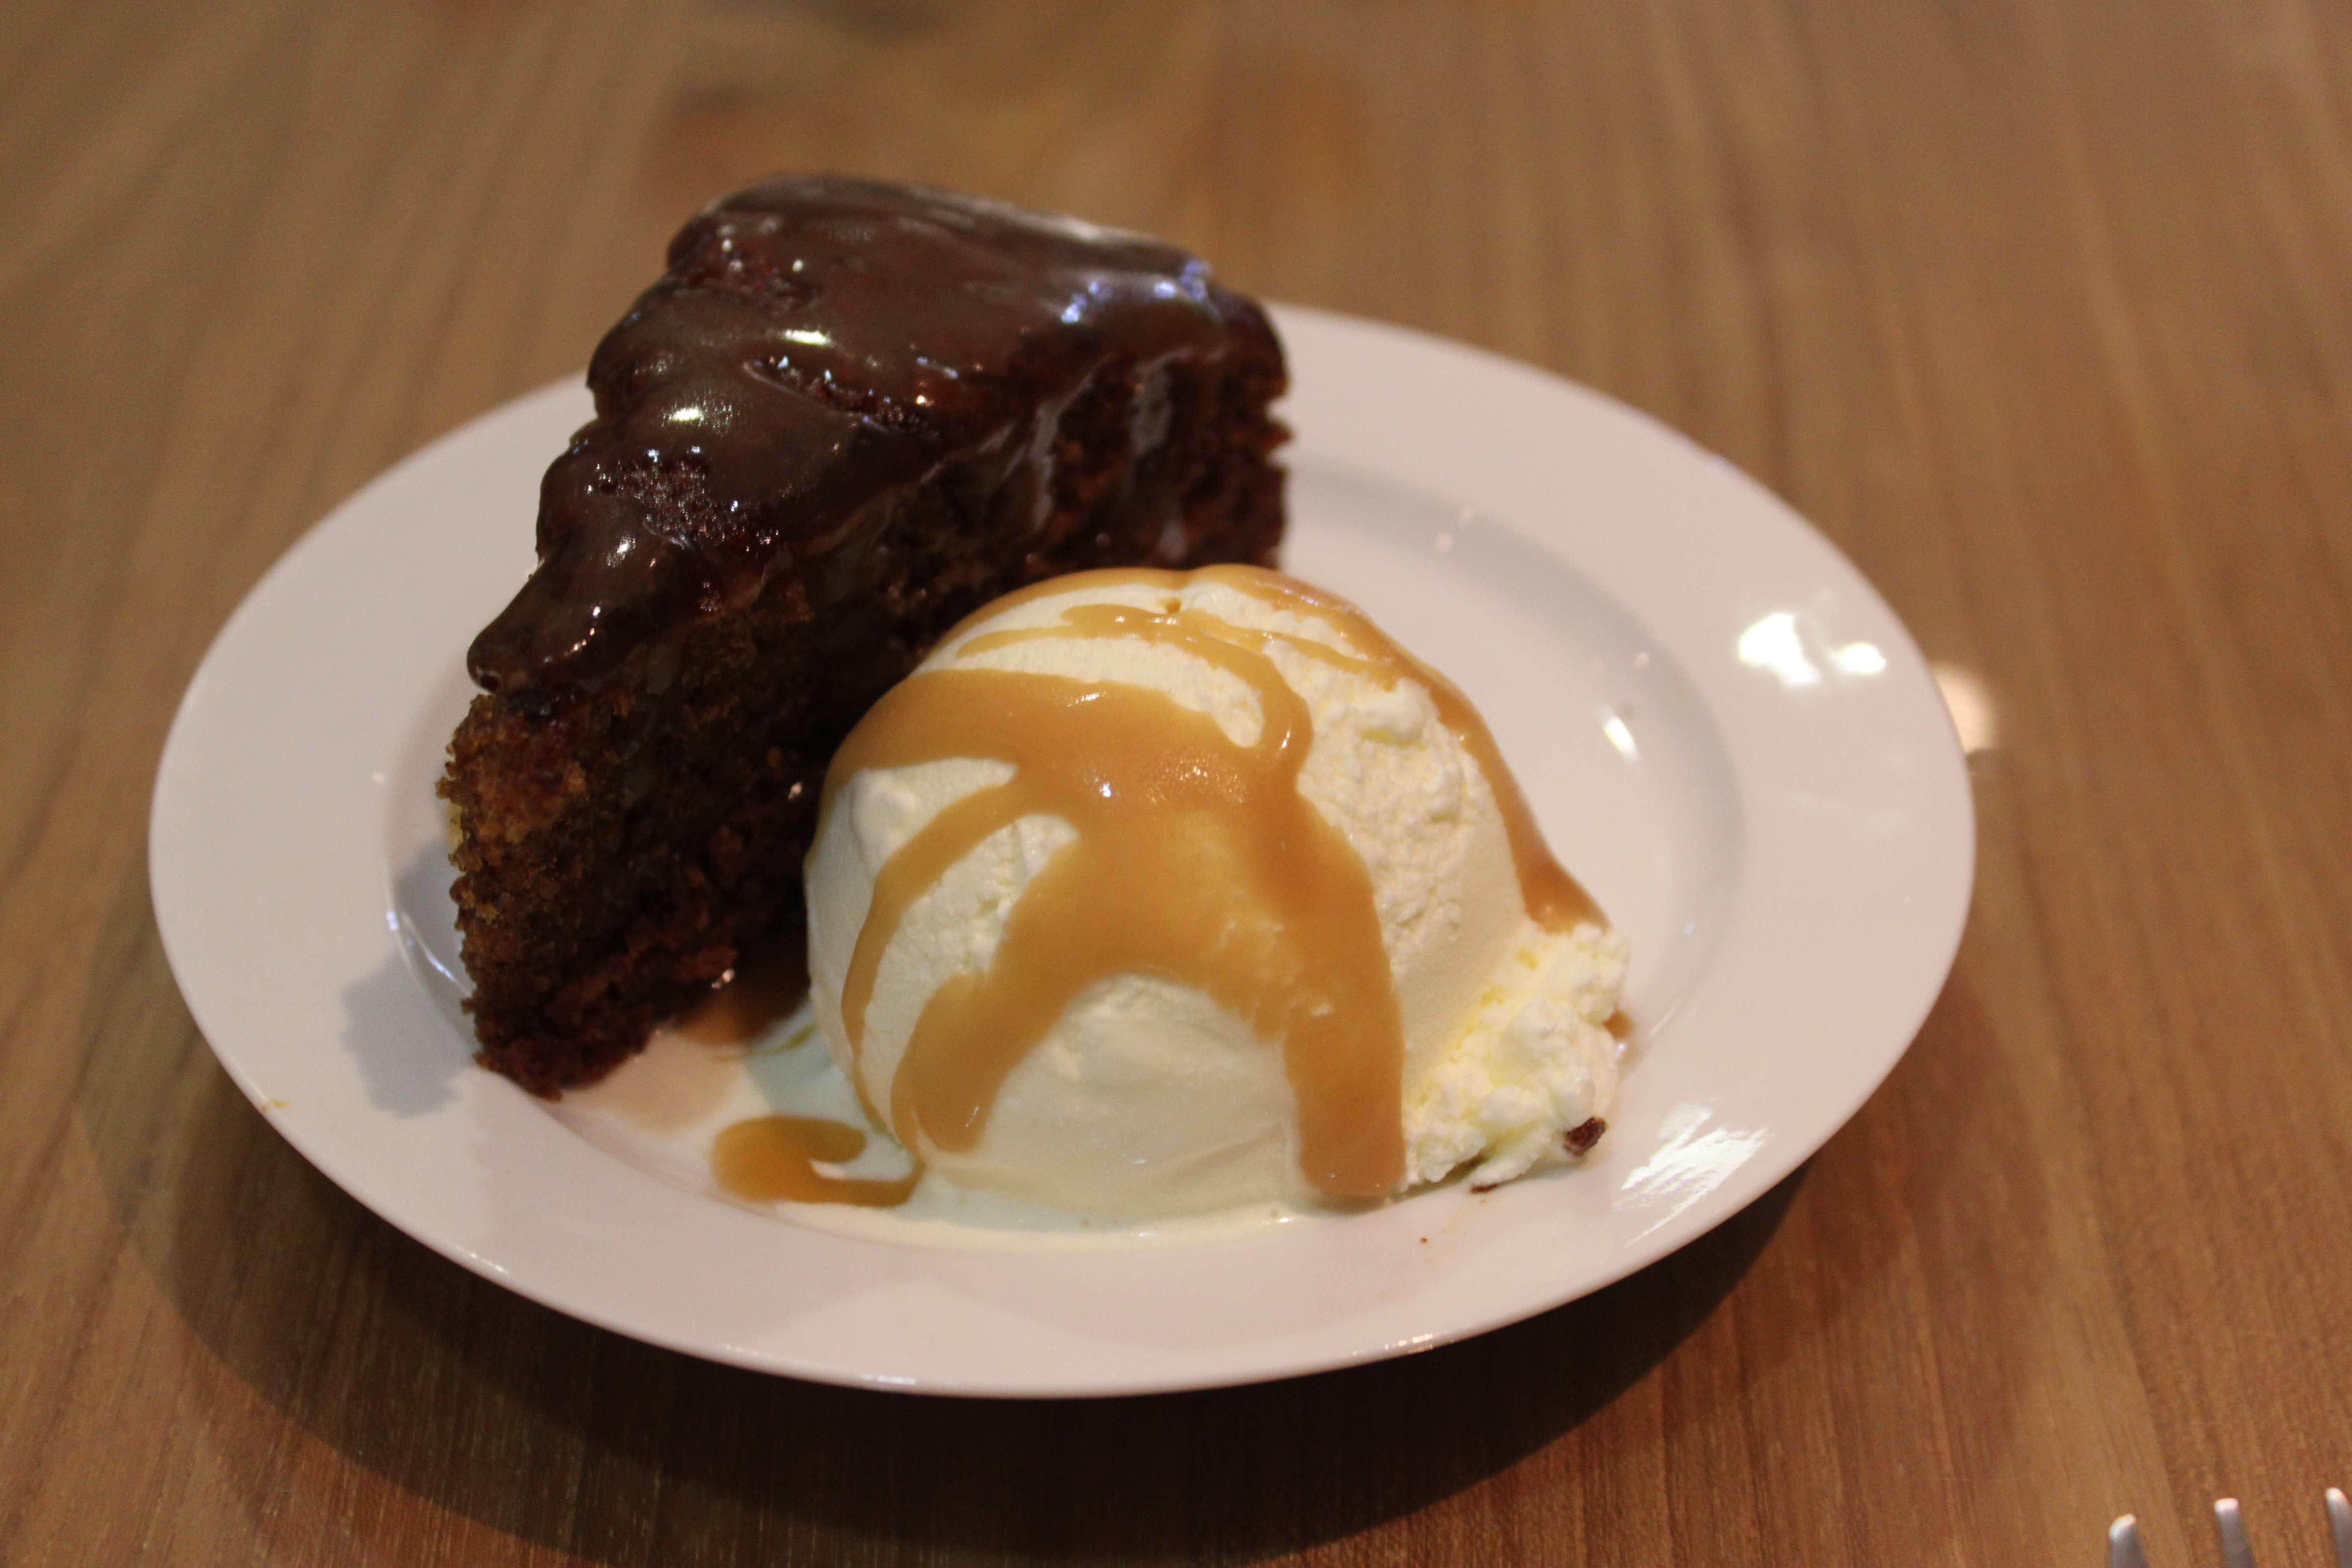 Cafe Valetta: Sticky date pudding with butterscotch sauce, pistachio  praline and vanilla bean ice